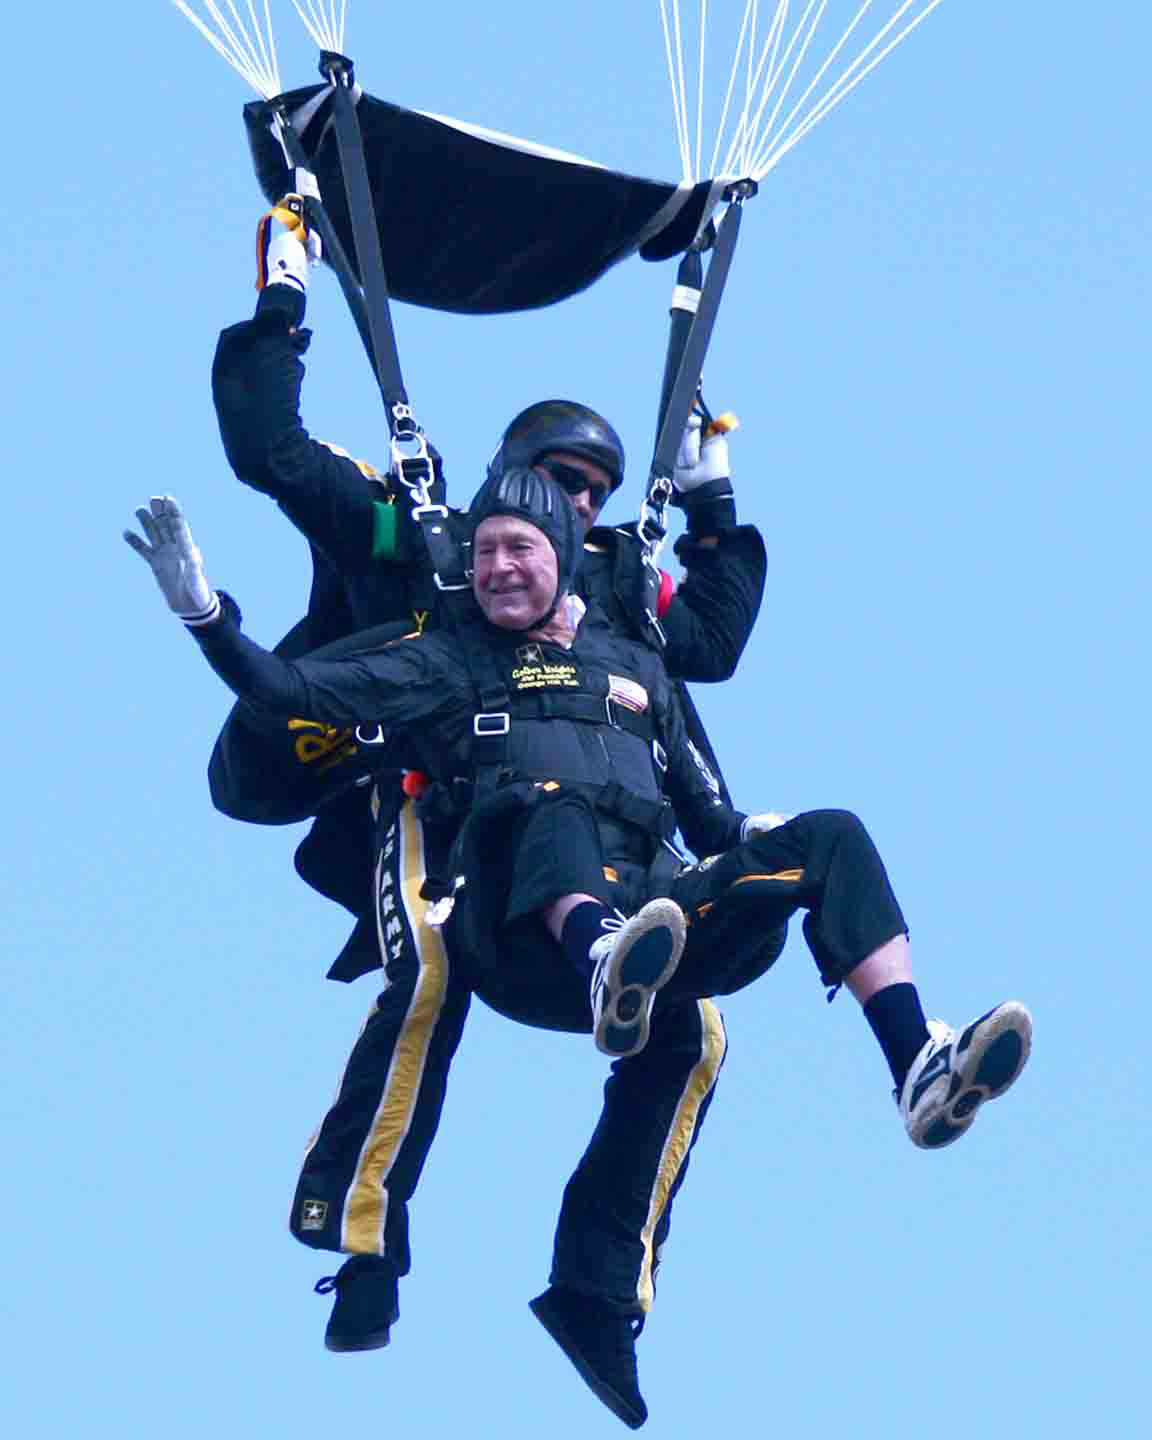 President Bush arrives by parachute for the 10th anniversary celebration of the opening of the George H.W. Bush Library.